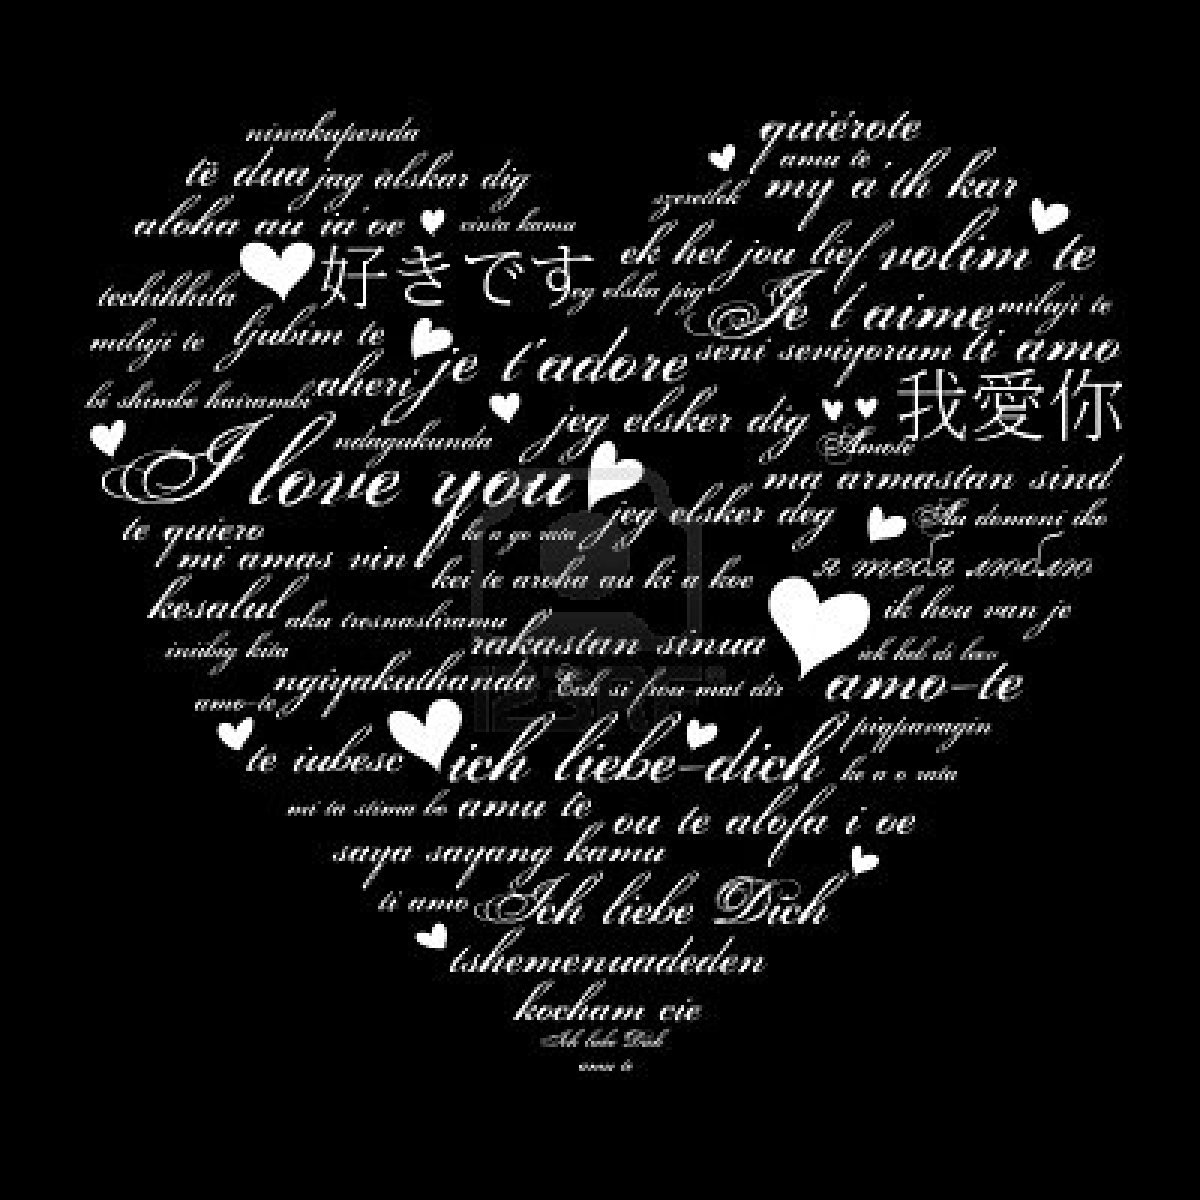 relationship quotes for her from the heart